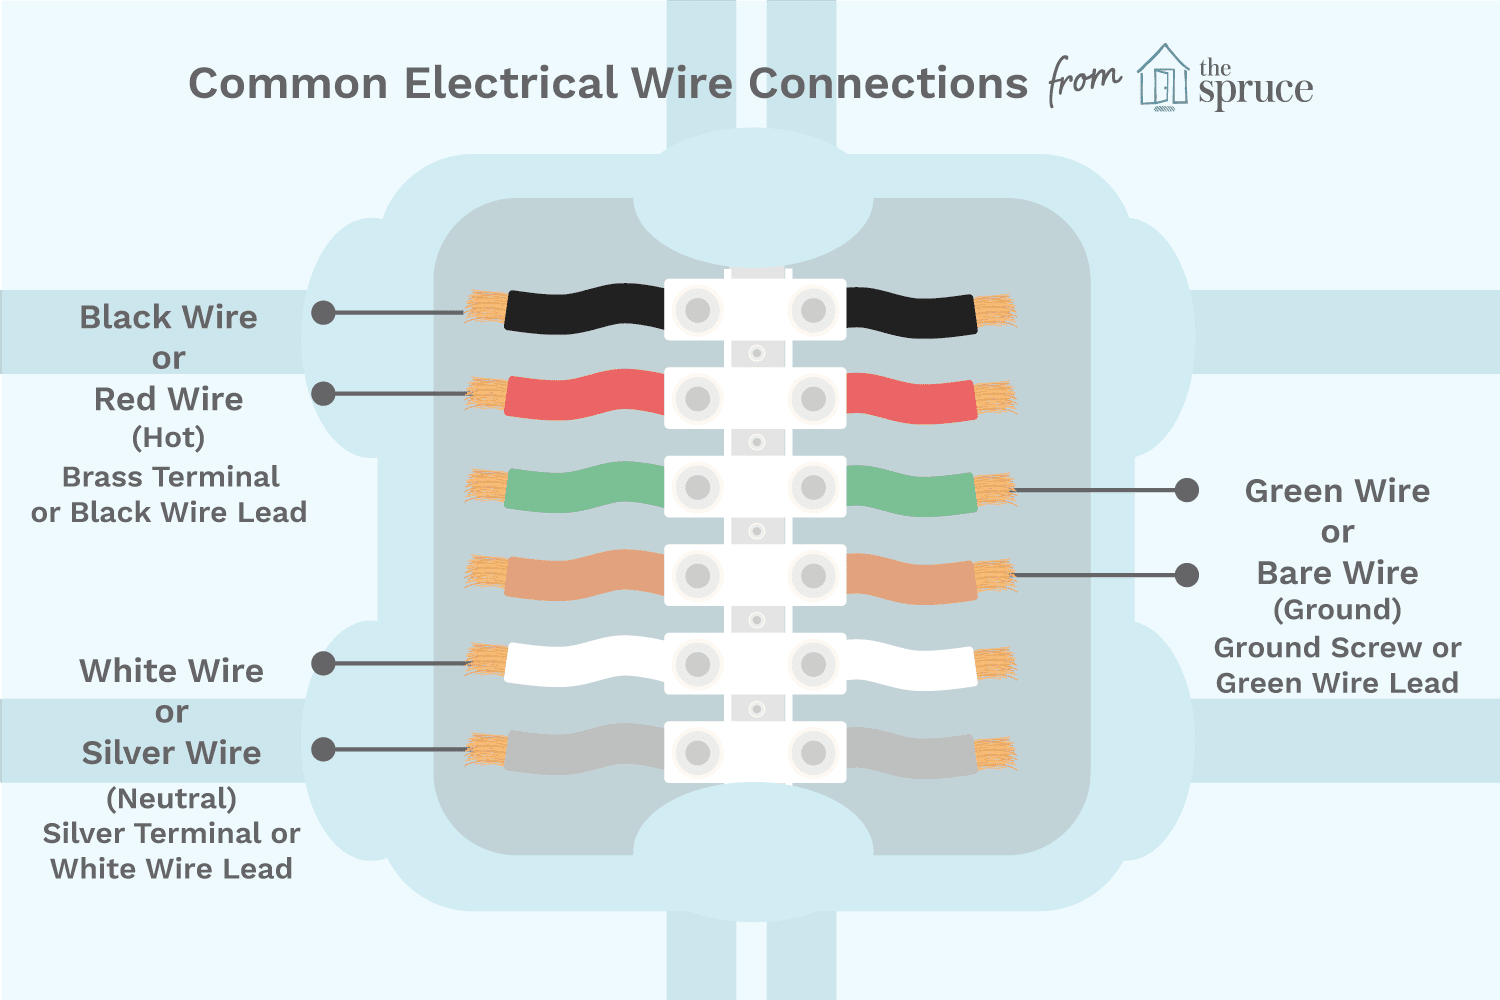 Color Coding Of Electrical Wires And Terminal Screws How To Wire A Single Pole Switch Diagram Three Way Terminals